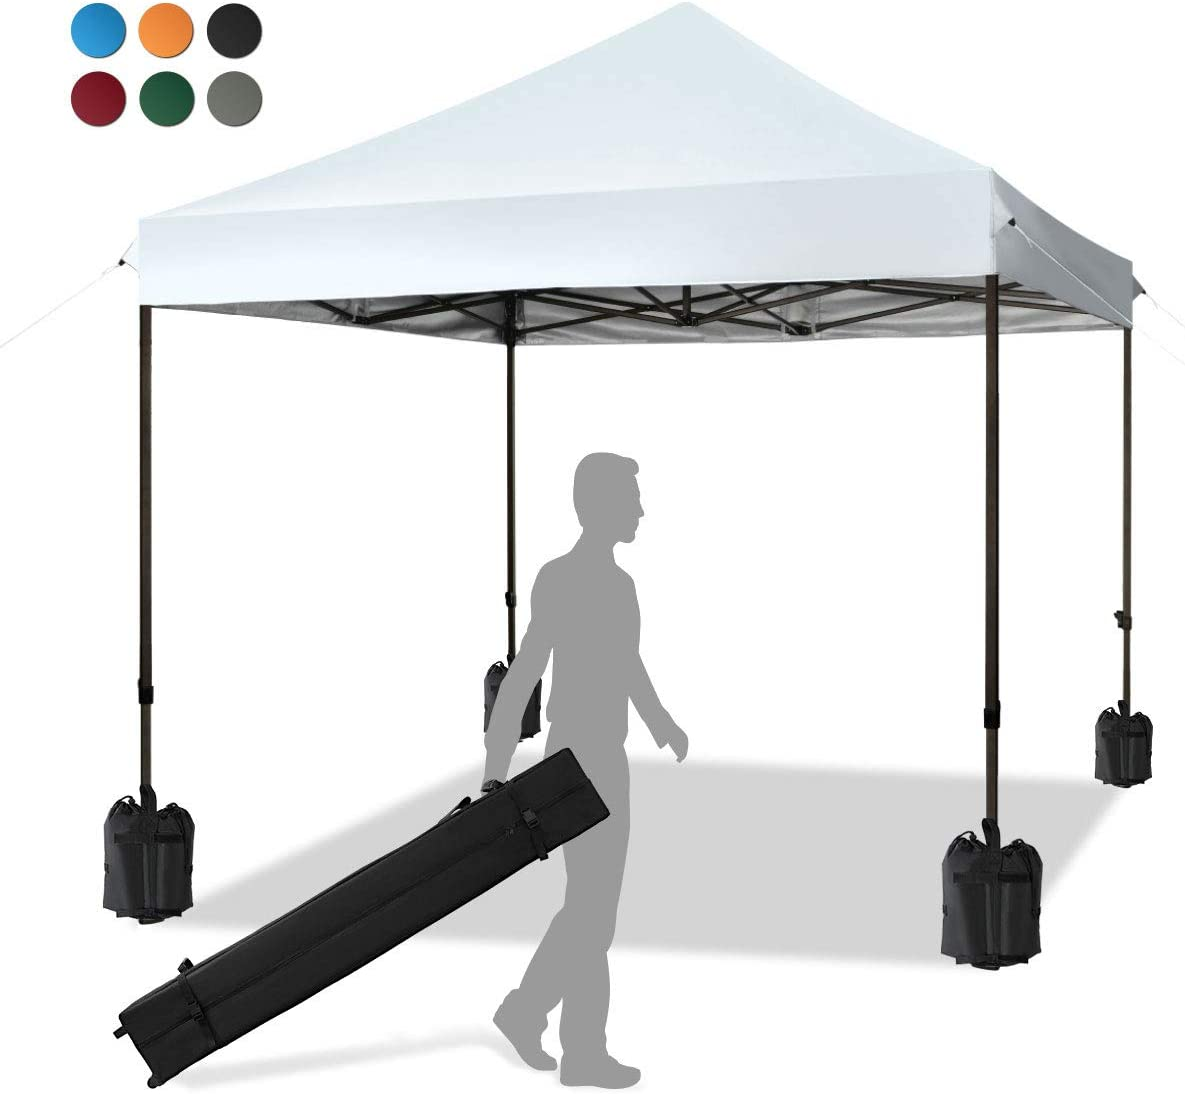 KITADIN Pop up Canopy Tent 10×10 FT Commercial Instant Shelter Outdoor Canopie